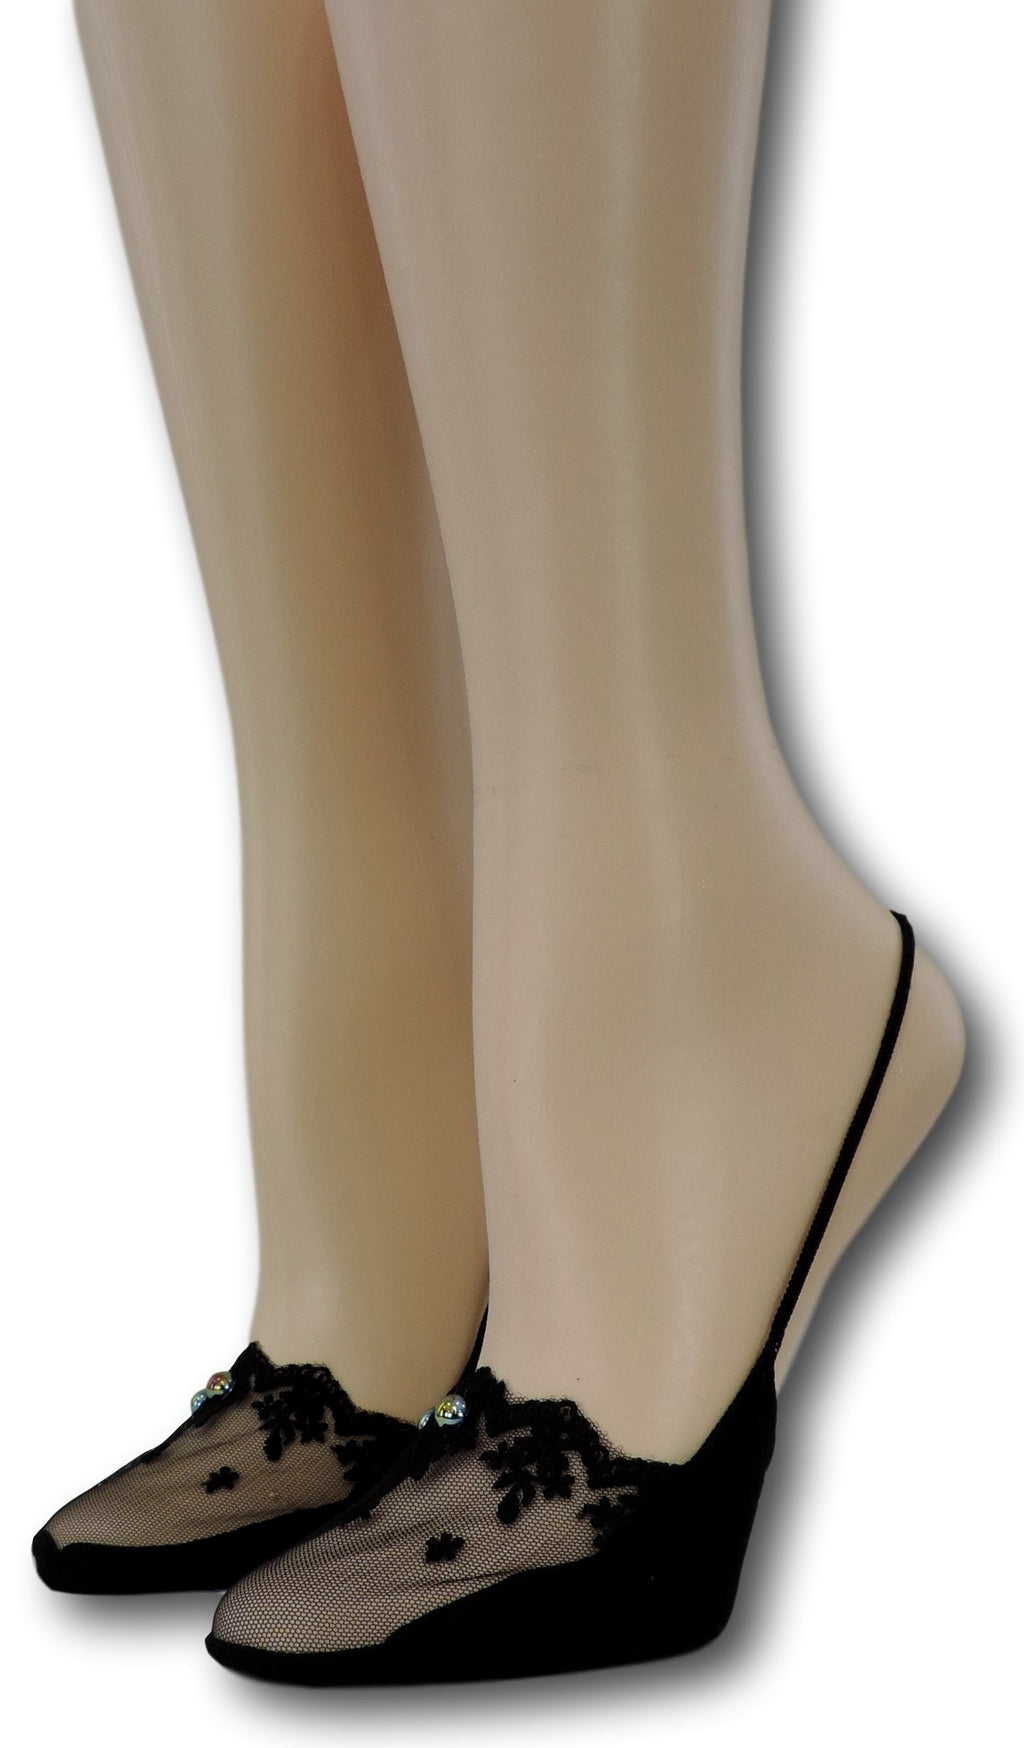 Slingback Black Sheer Socks with beads